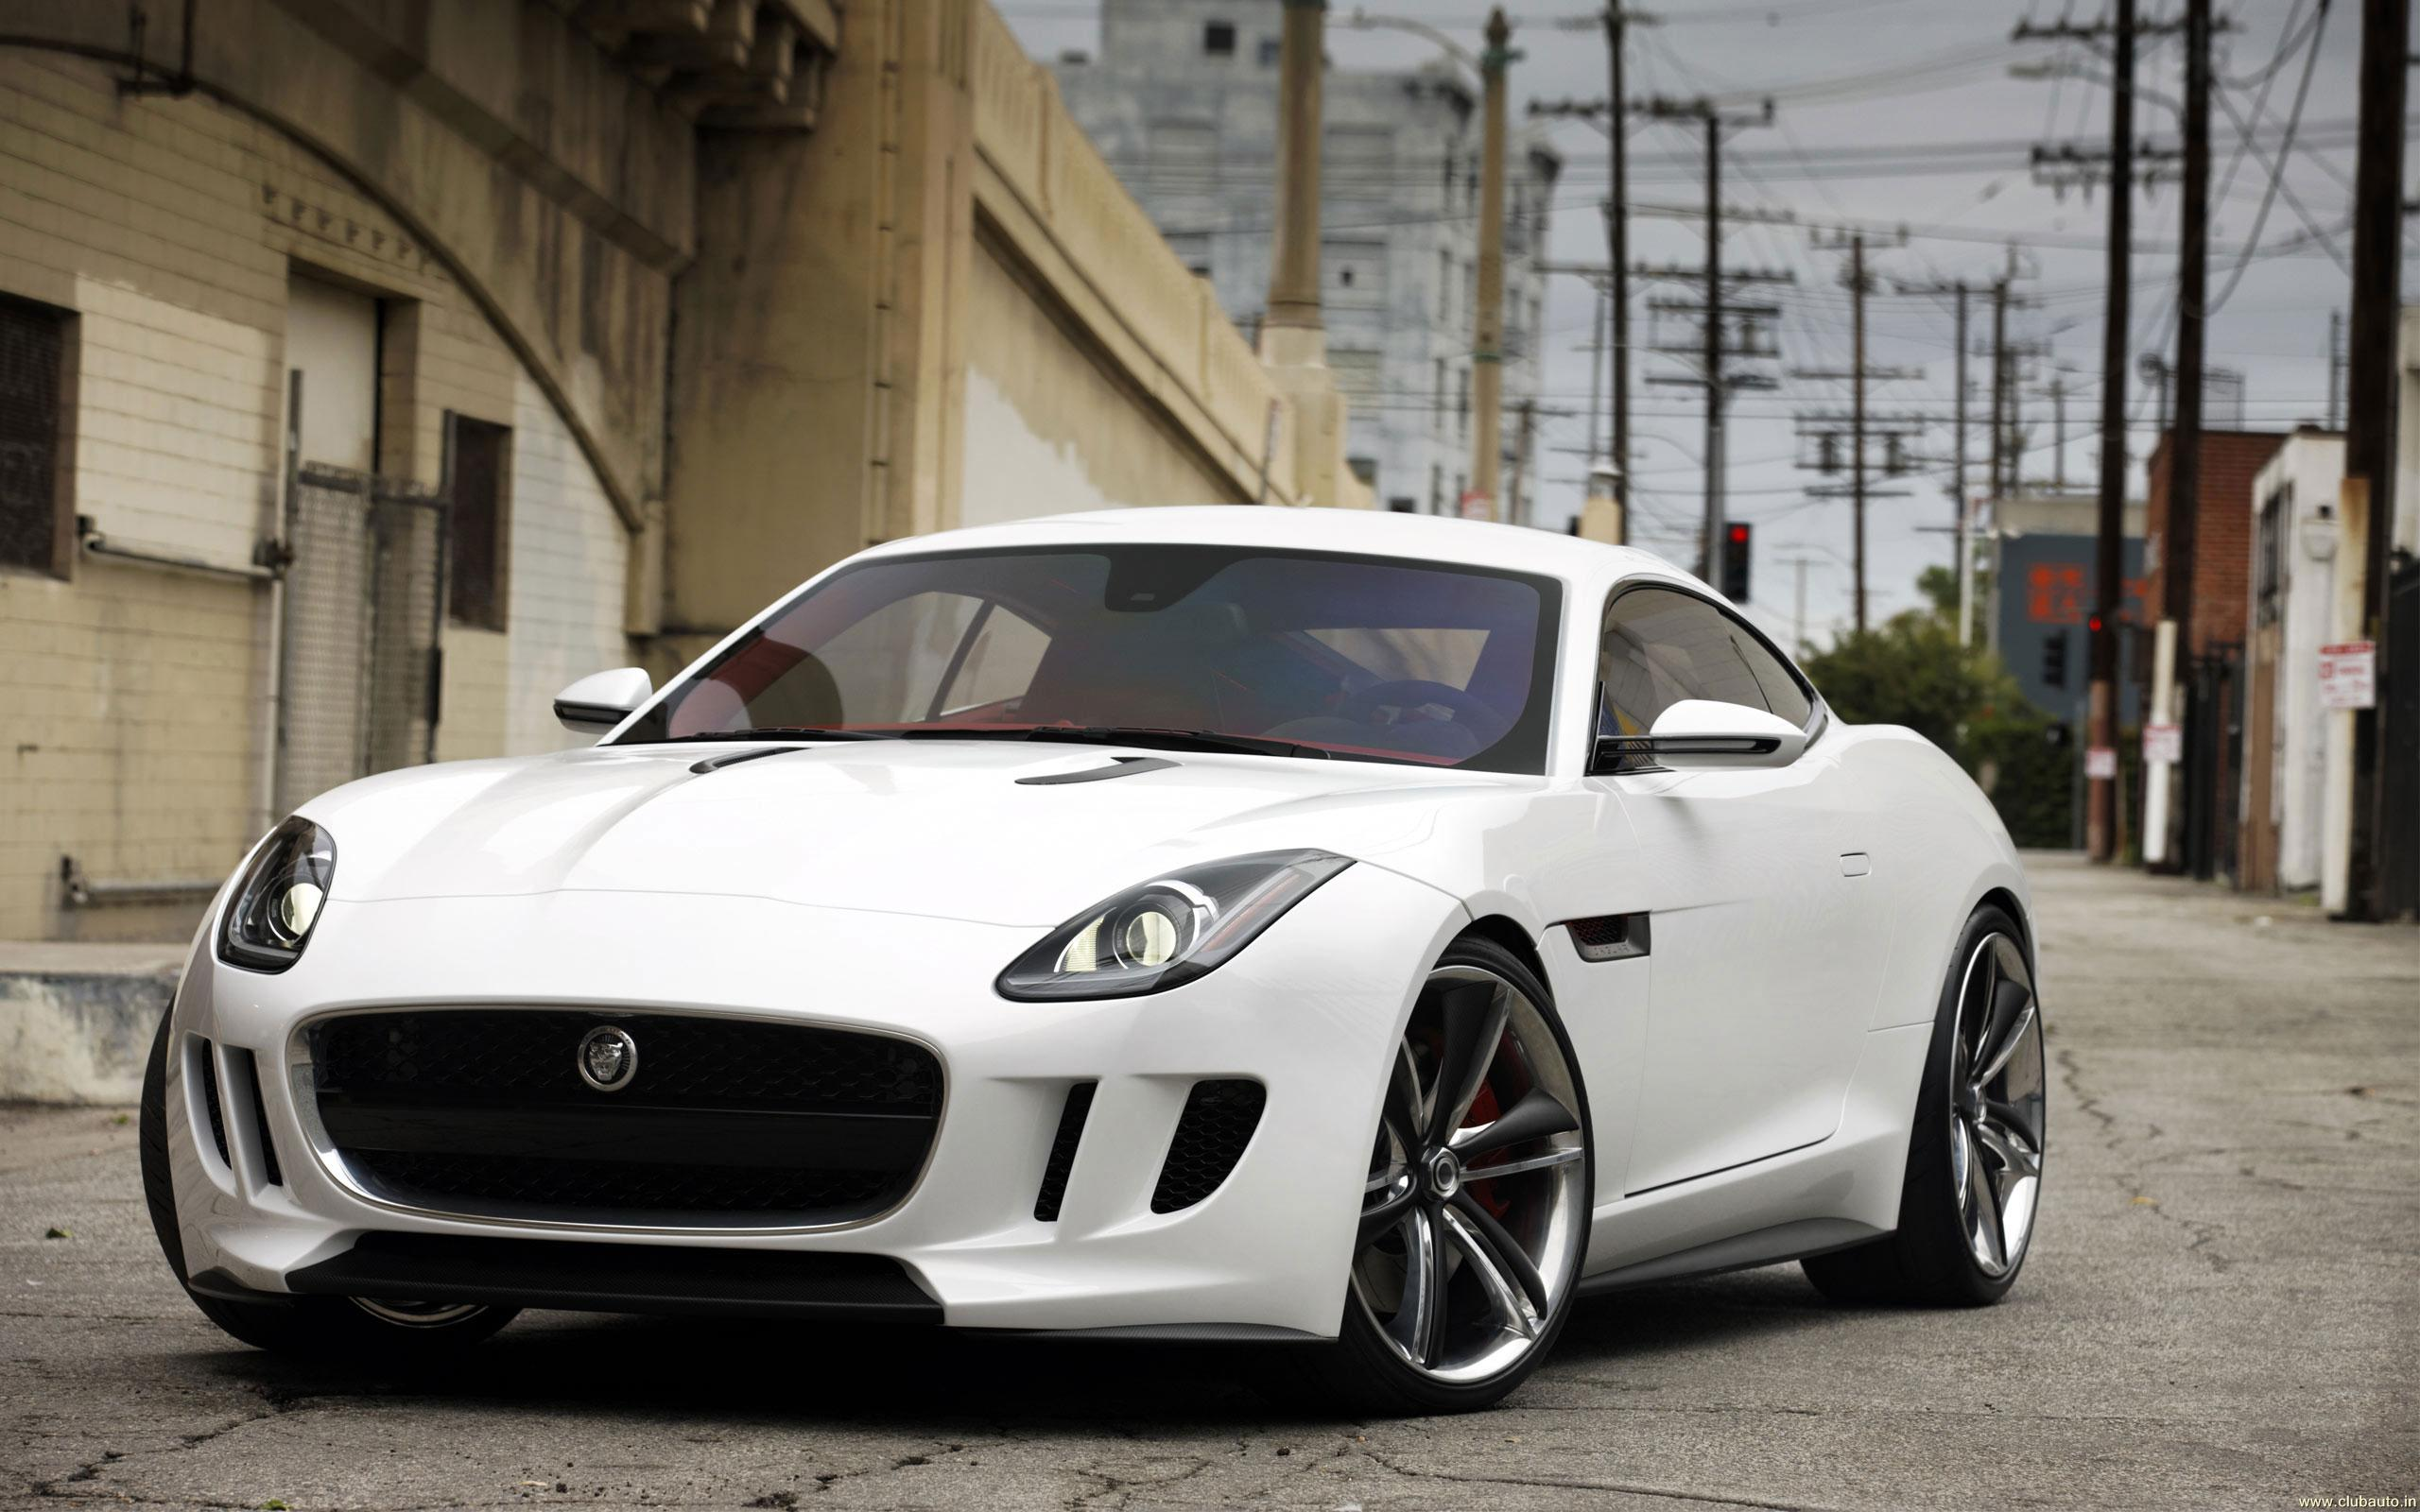 Download Jaguar Car Wallpaper Hd 2560x1600 44 Jaguar Wallpapers